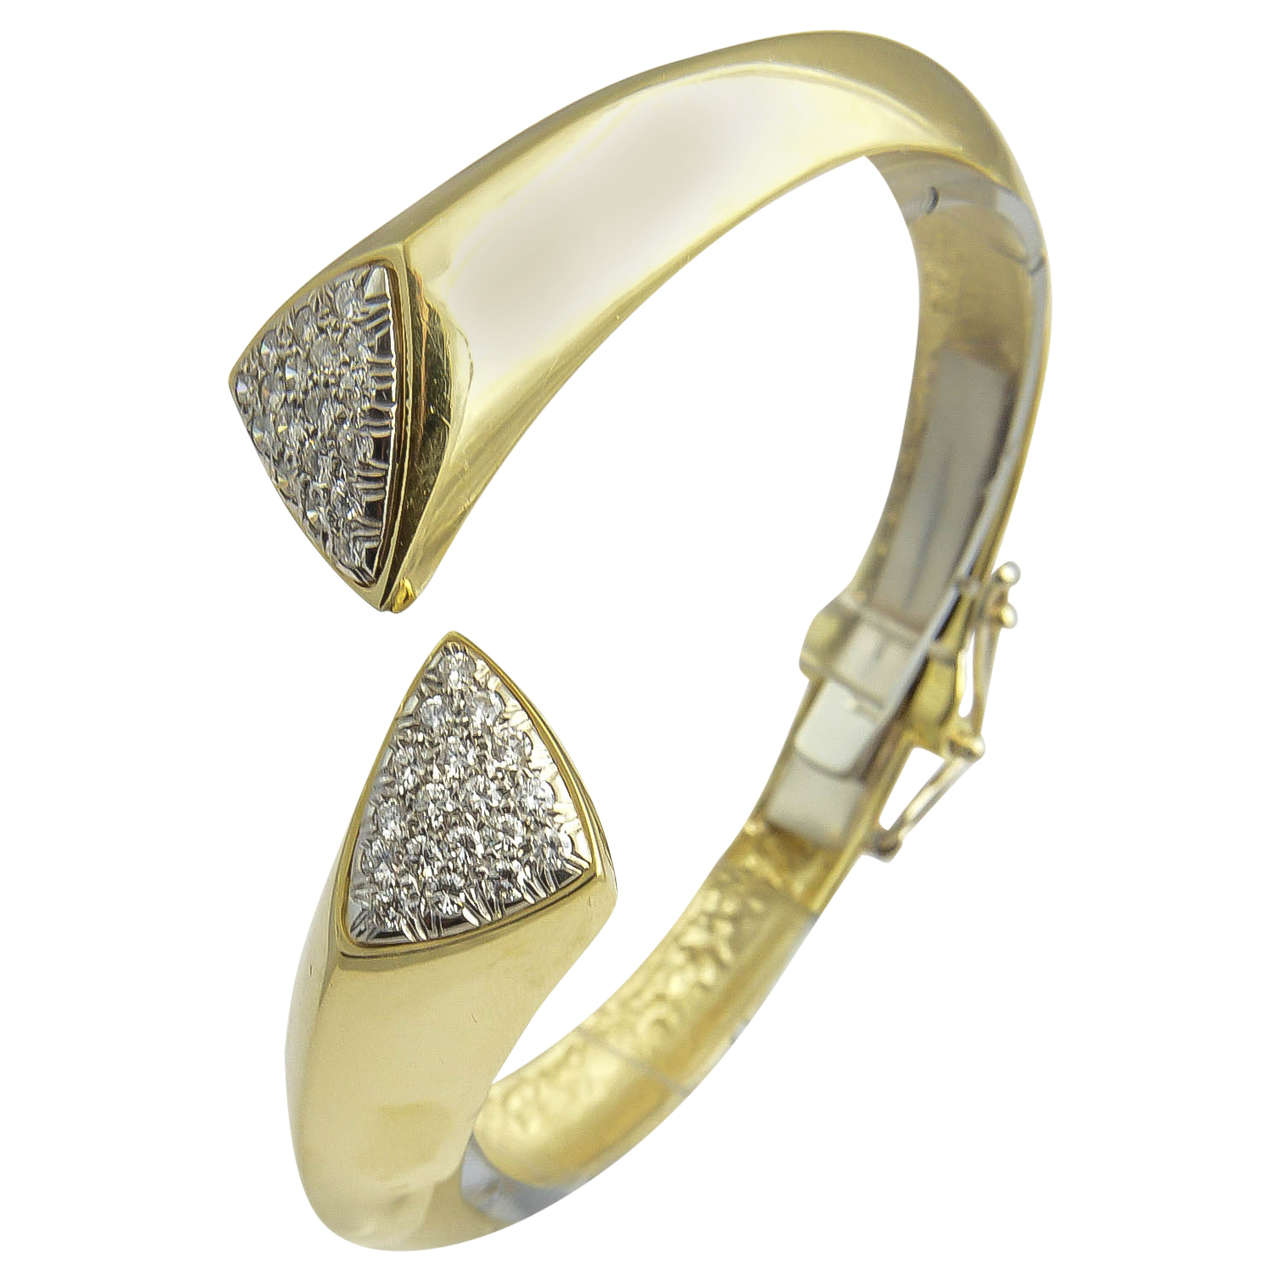 1970s Diamond Gold Bangle Bracelet